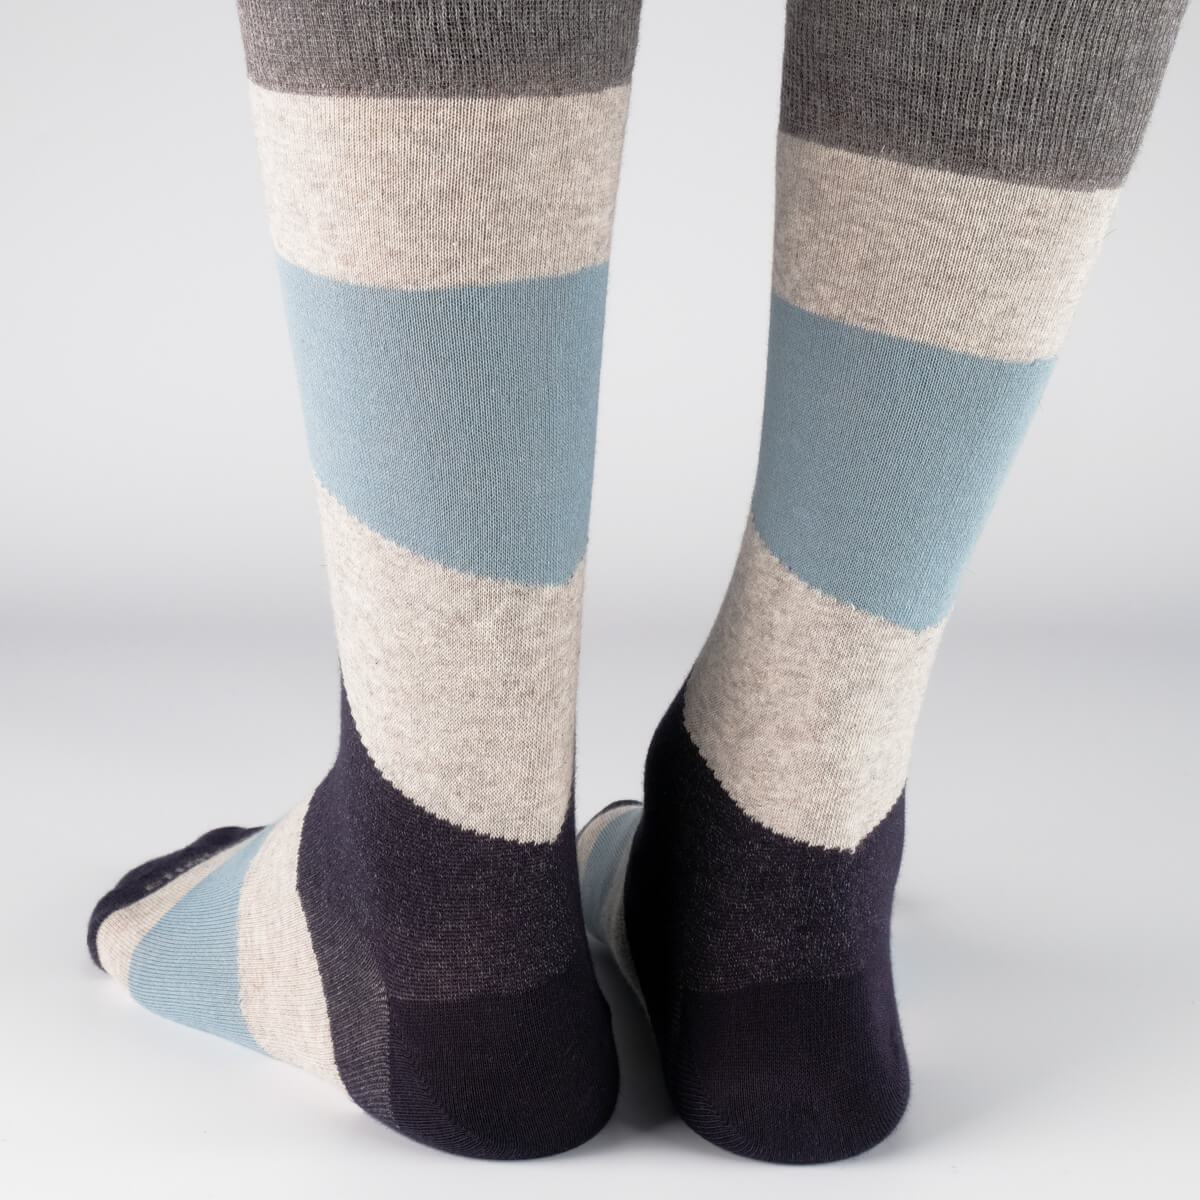 Comporta Stripes - Grey - Mens Socks | Etiquette Clothiers Global Official